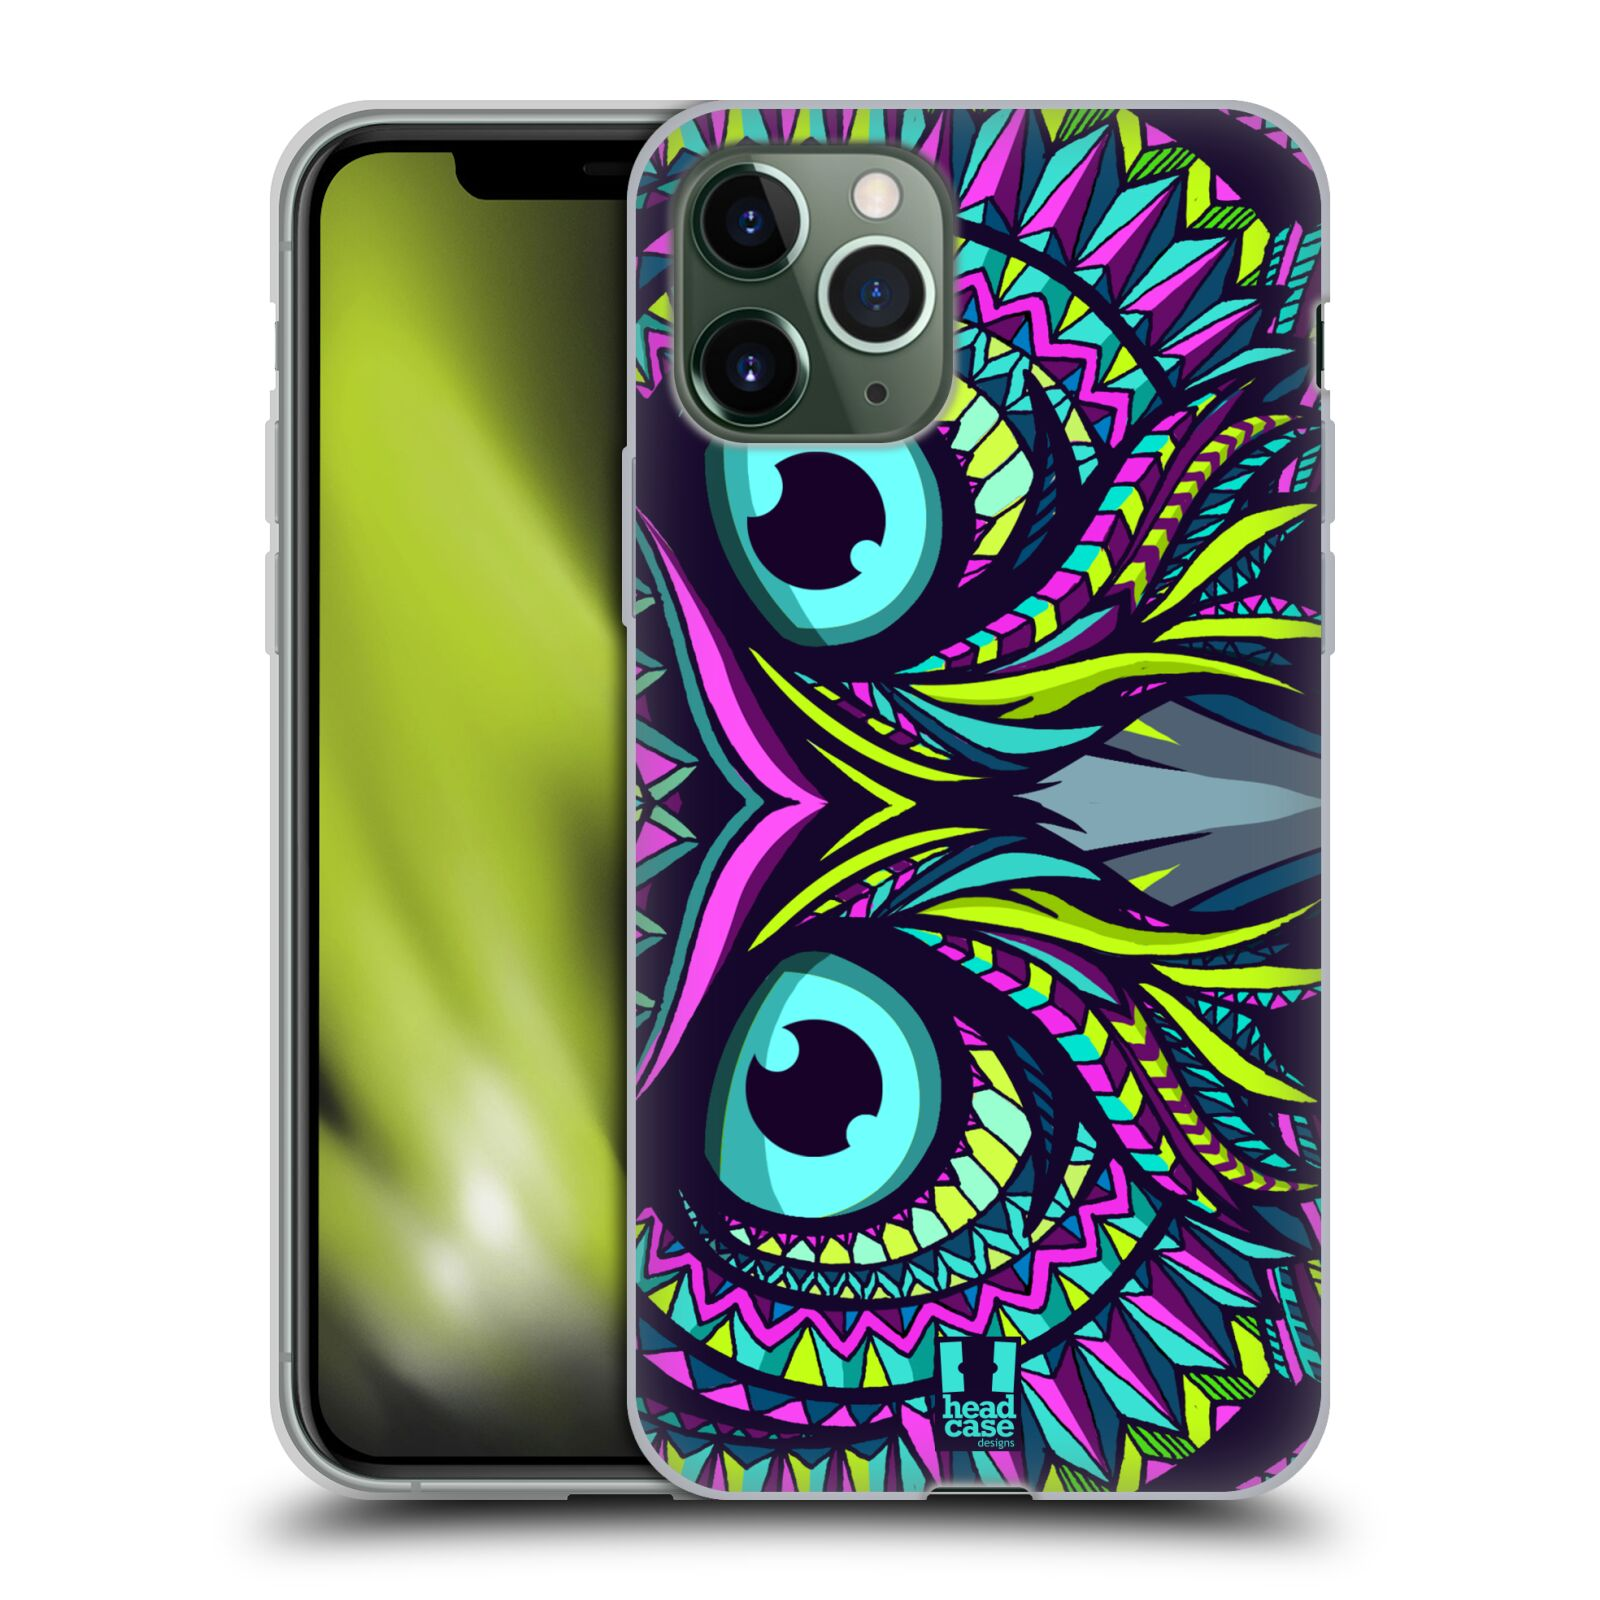 apple iphone x kryt | Silikonové pouzdro na mobil Apple iPhone 11 Pro - Head Case - AZTEC SOVA